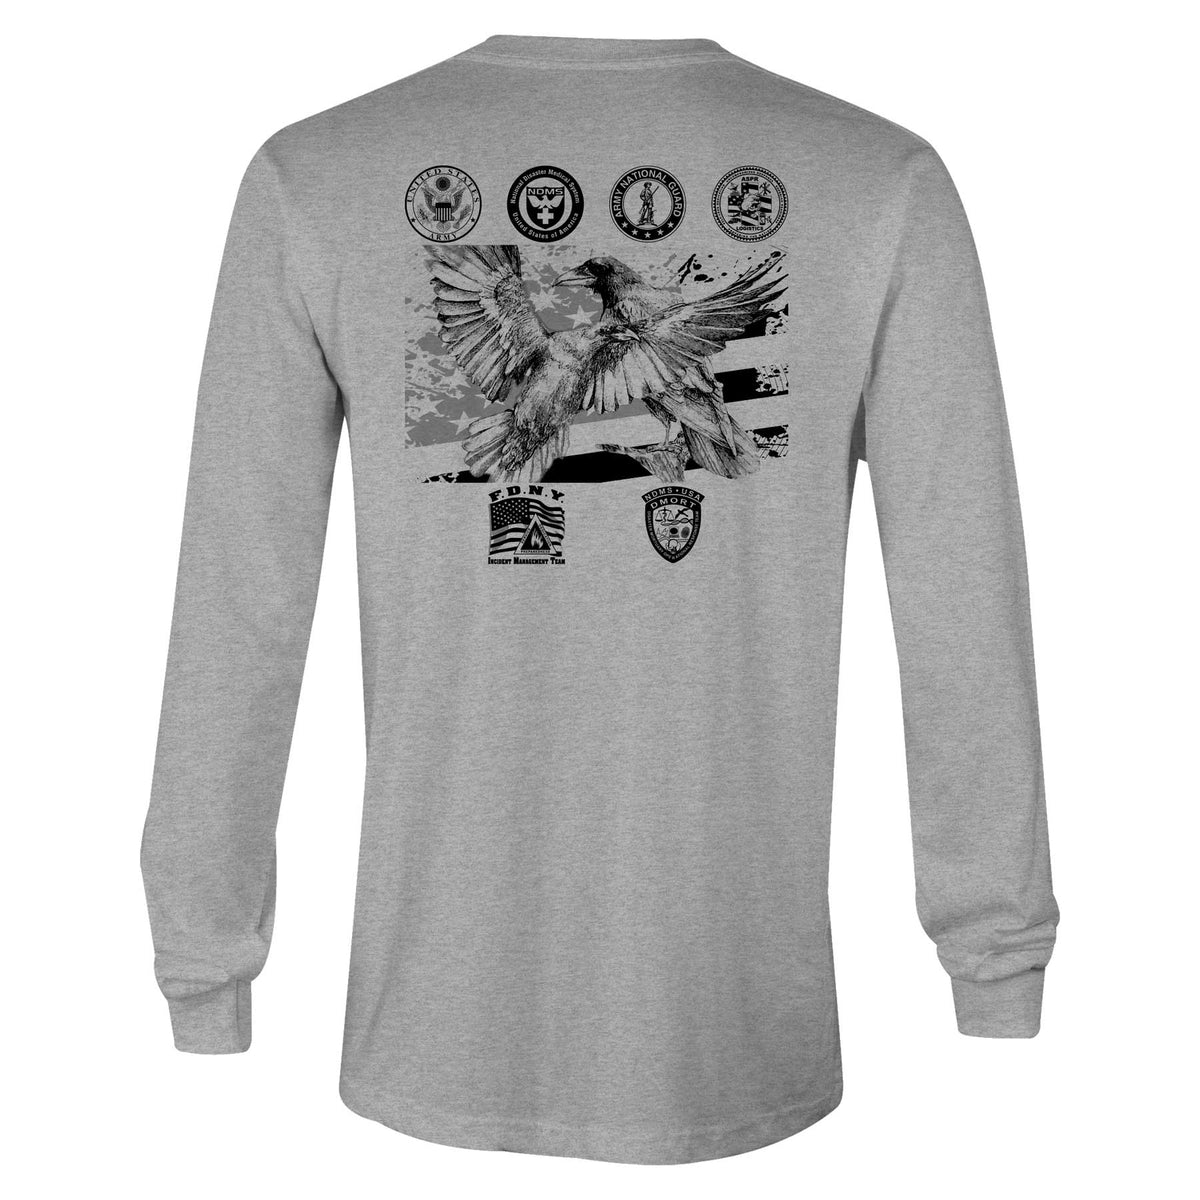 Raven Deployment Longsleeve Cotton Softstyle T-Shirt